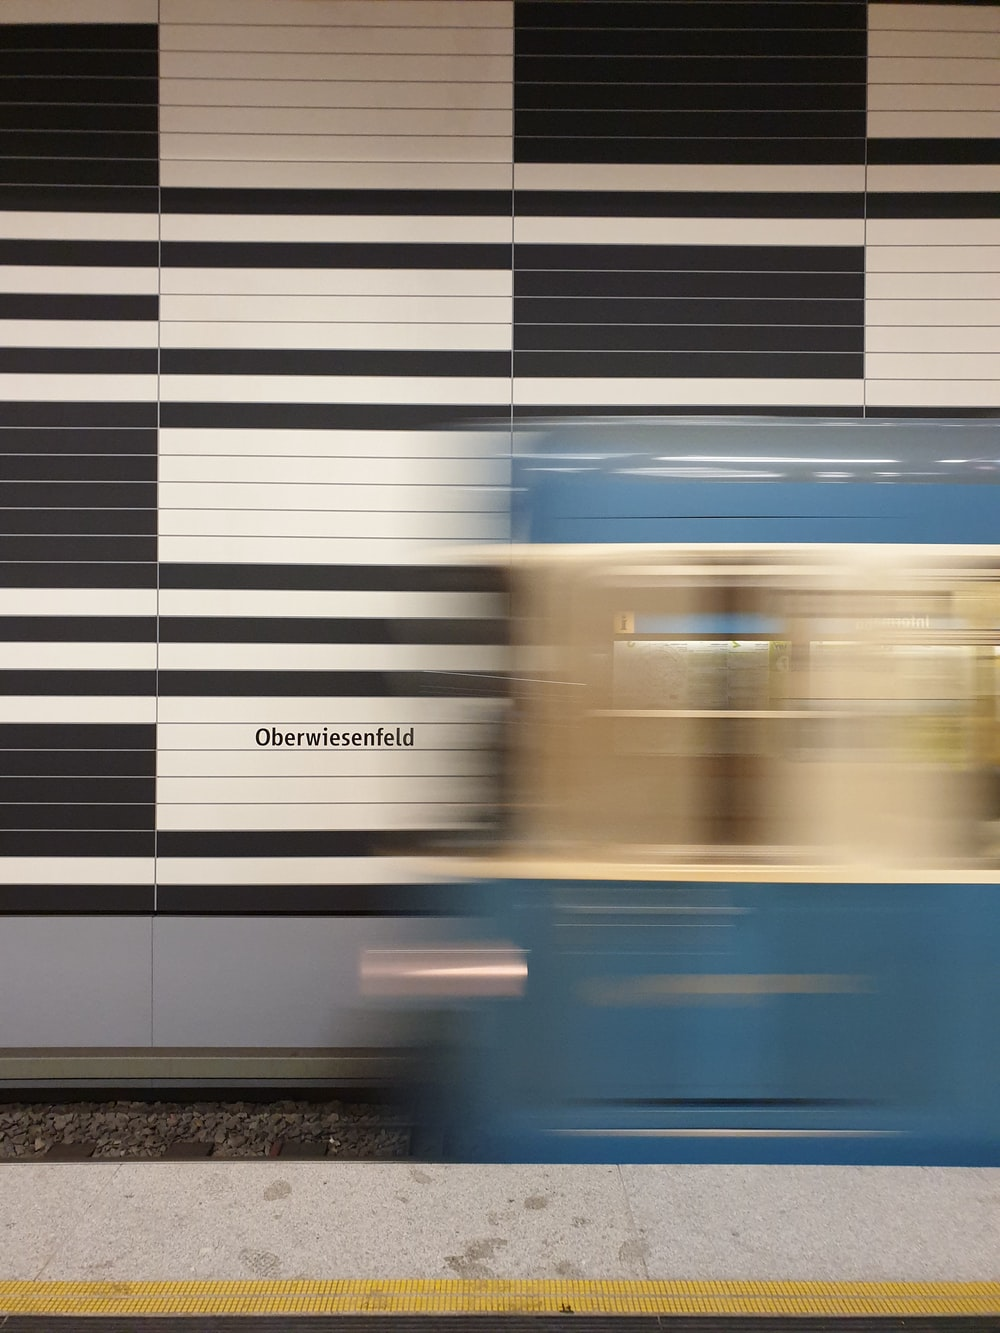 blue and white train in train station